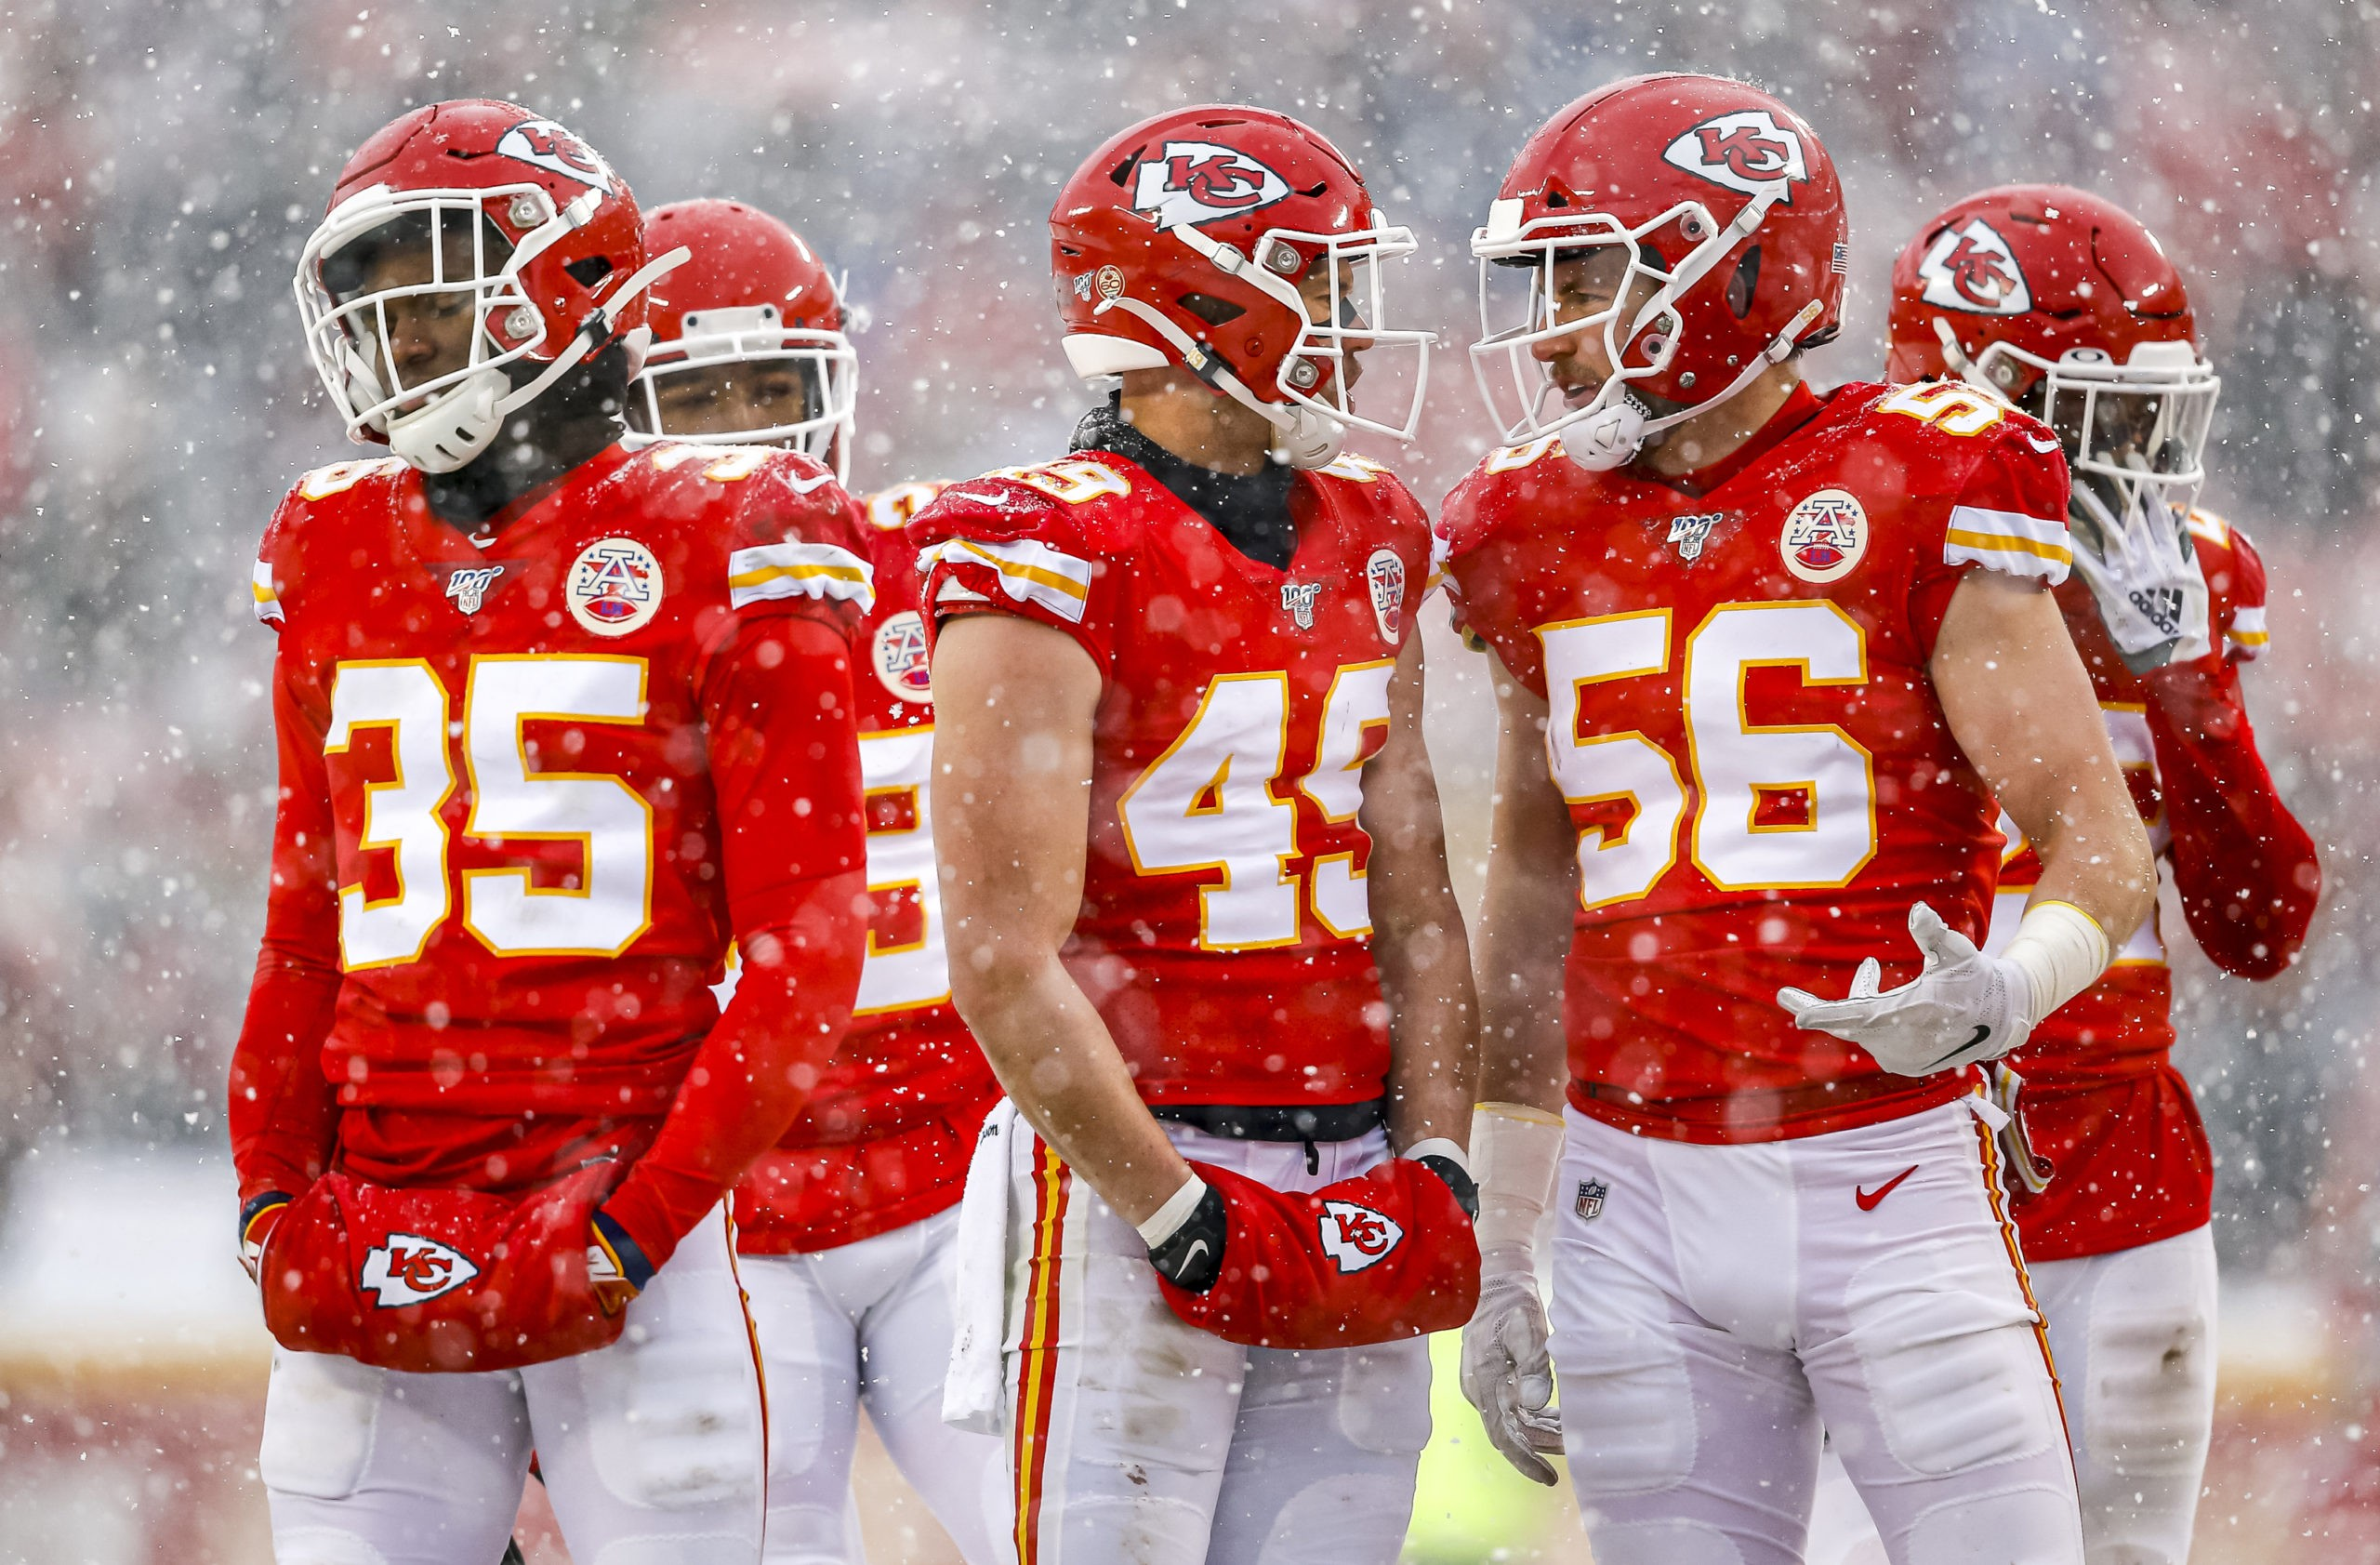 Chiefs Favored to Win Super Bowl